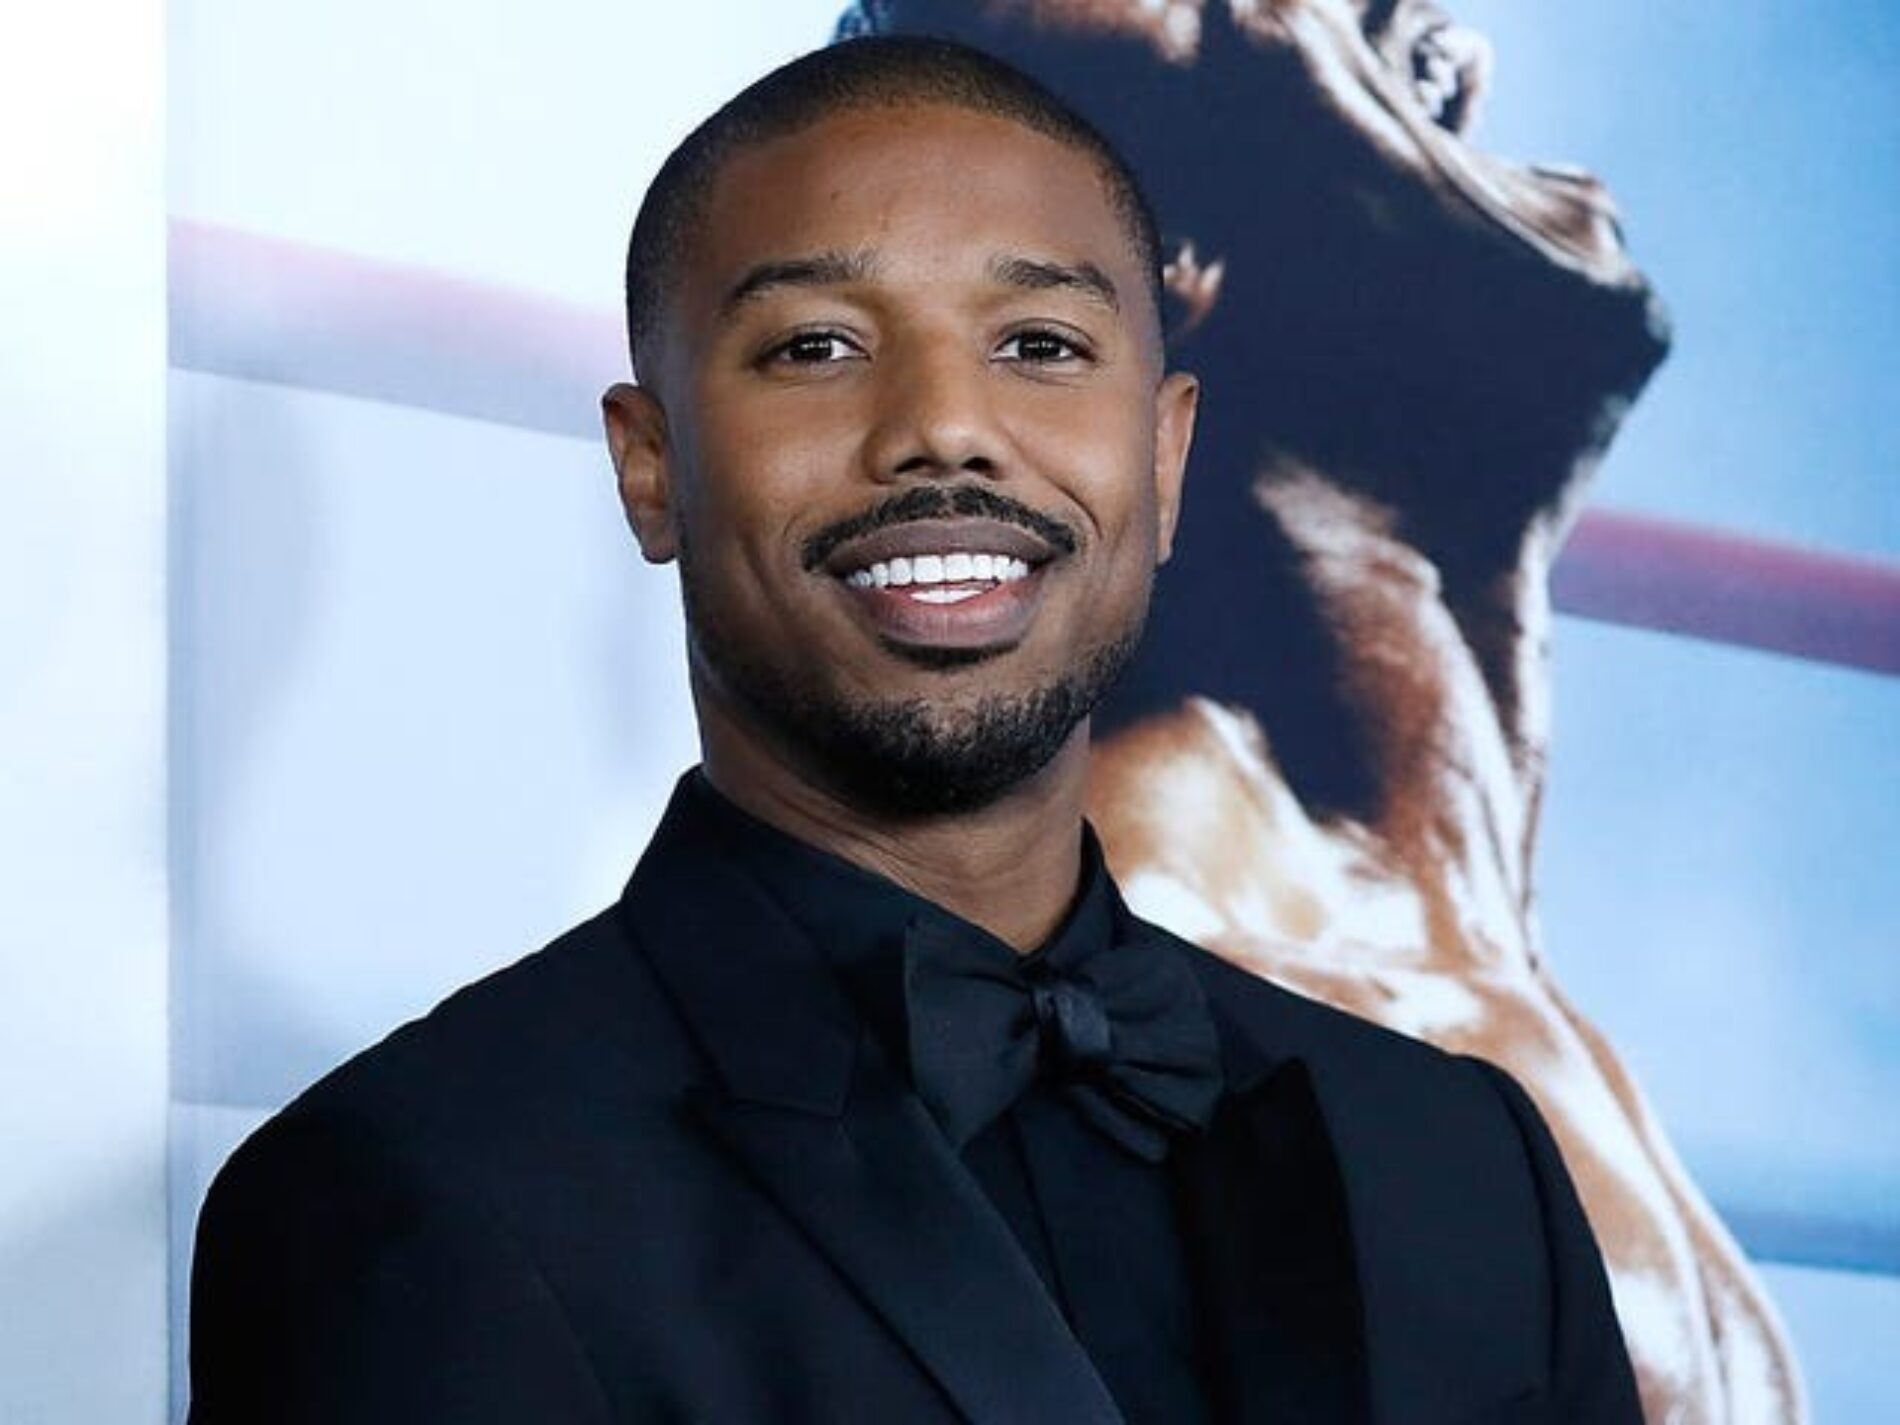 Former Hollywood Publicist Claims That Actor Michael B. Jordan Could Be Gay